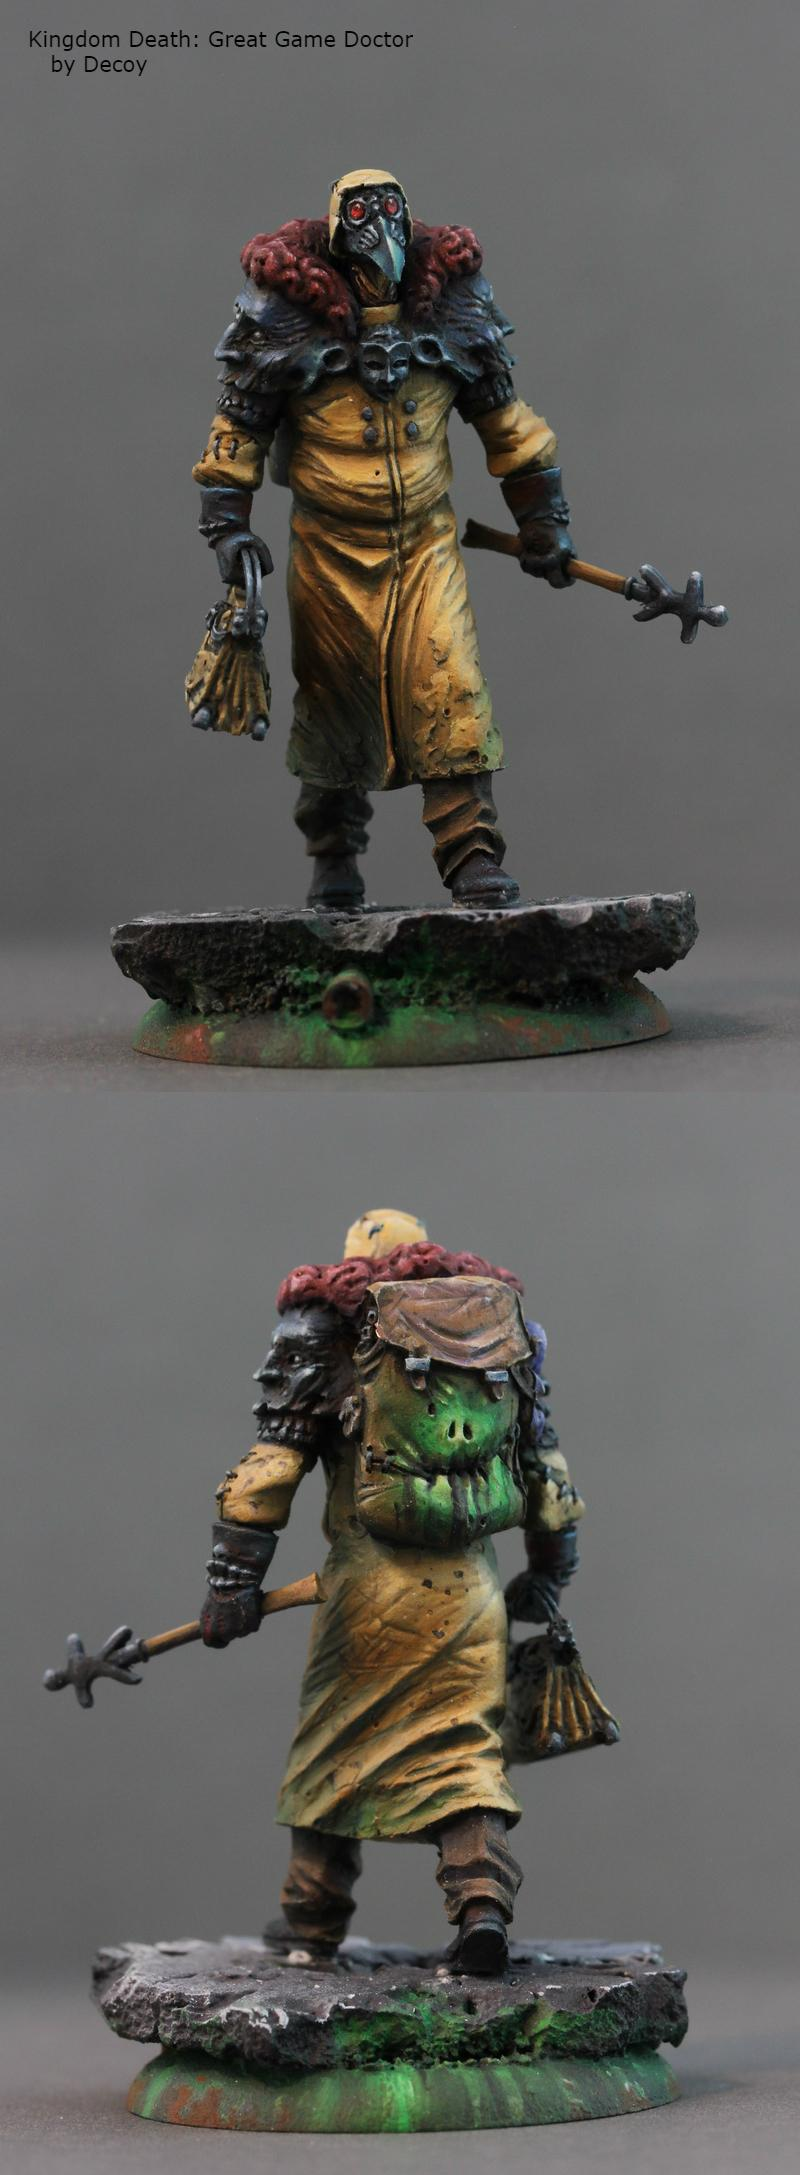 Boardgame, Kingdom Death, Miniature, Monster, Painting